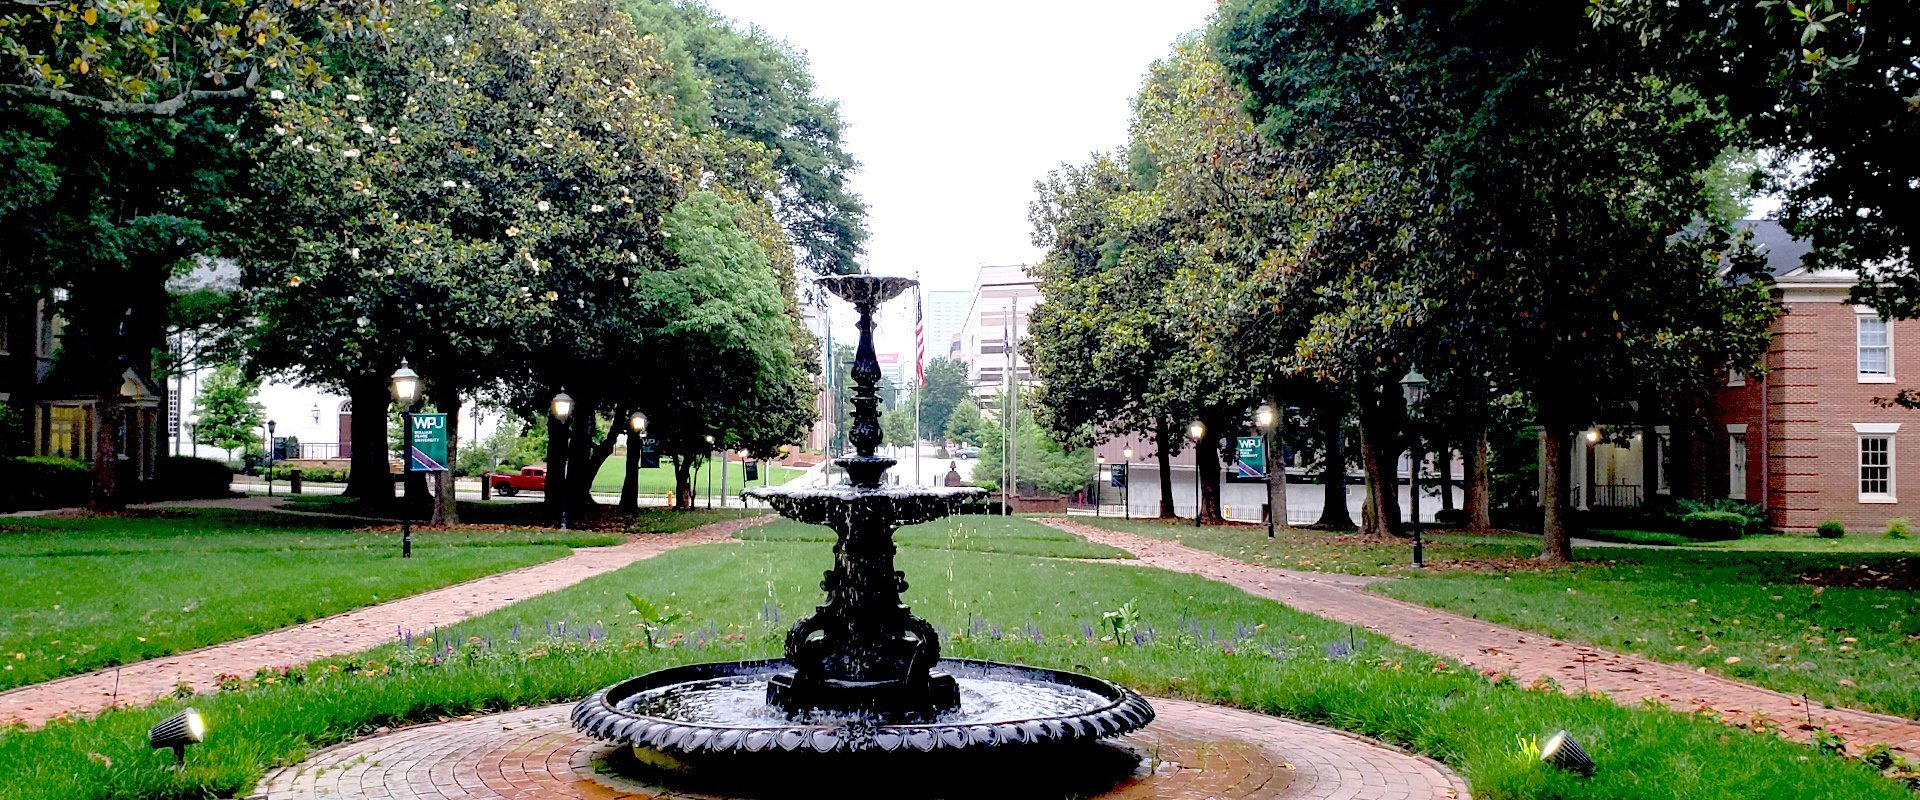 William Peace University Downtown Raleigh NC Historic Fountain - Climate Expert Ruth Greenspan Bell to Visit WPU for Climate Change Talk